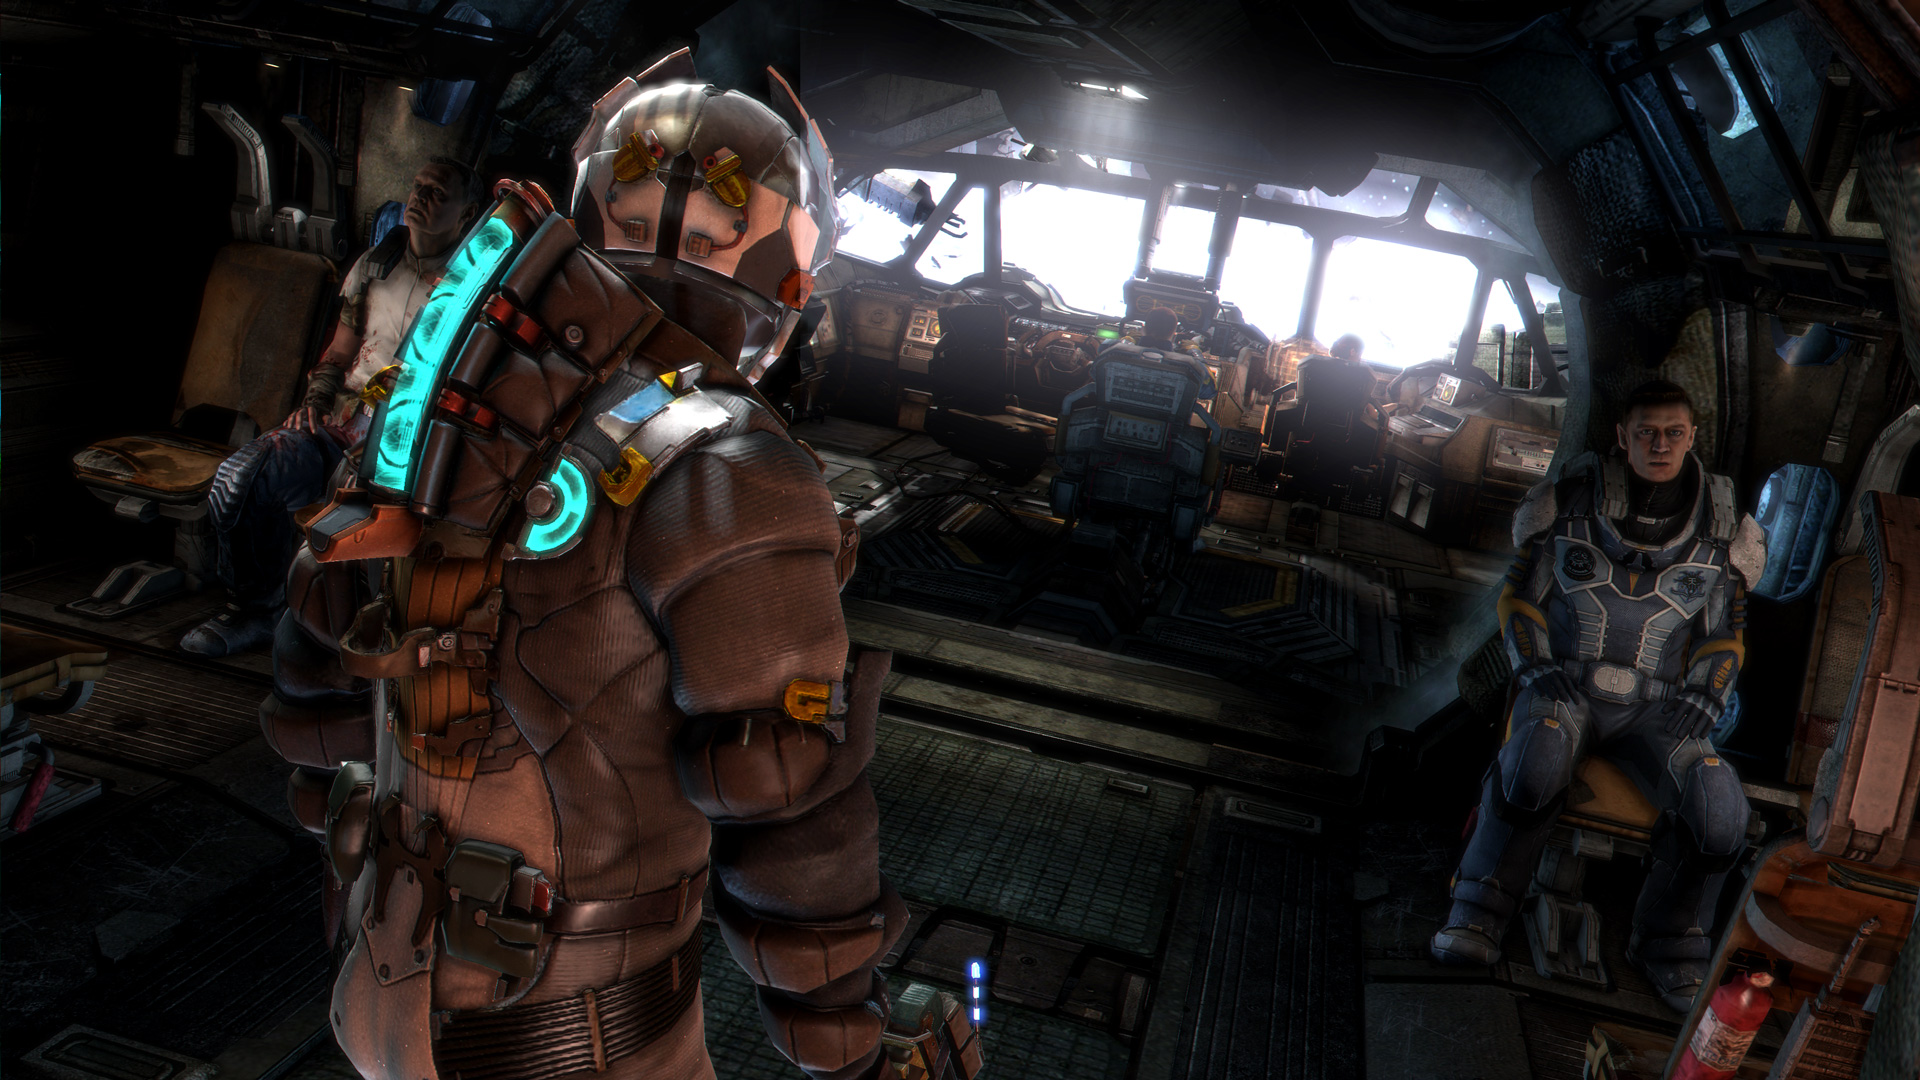 Dead Space 3 opens with series protagonist Isaac Clarke in hiding, as he tries to forget the horrors of the Marker, an alien artifact that causes insanity ...